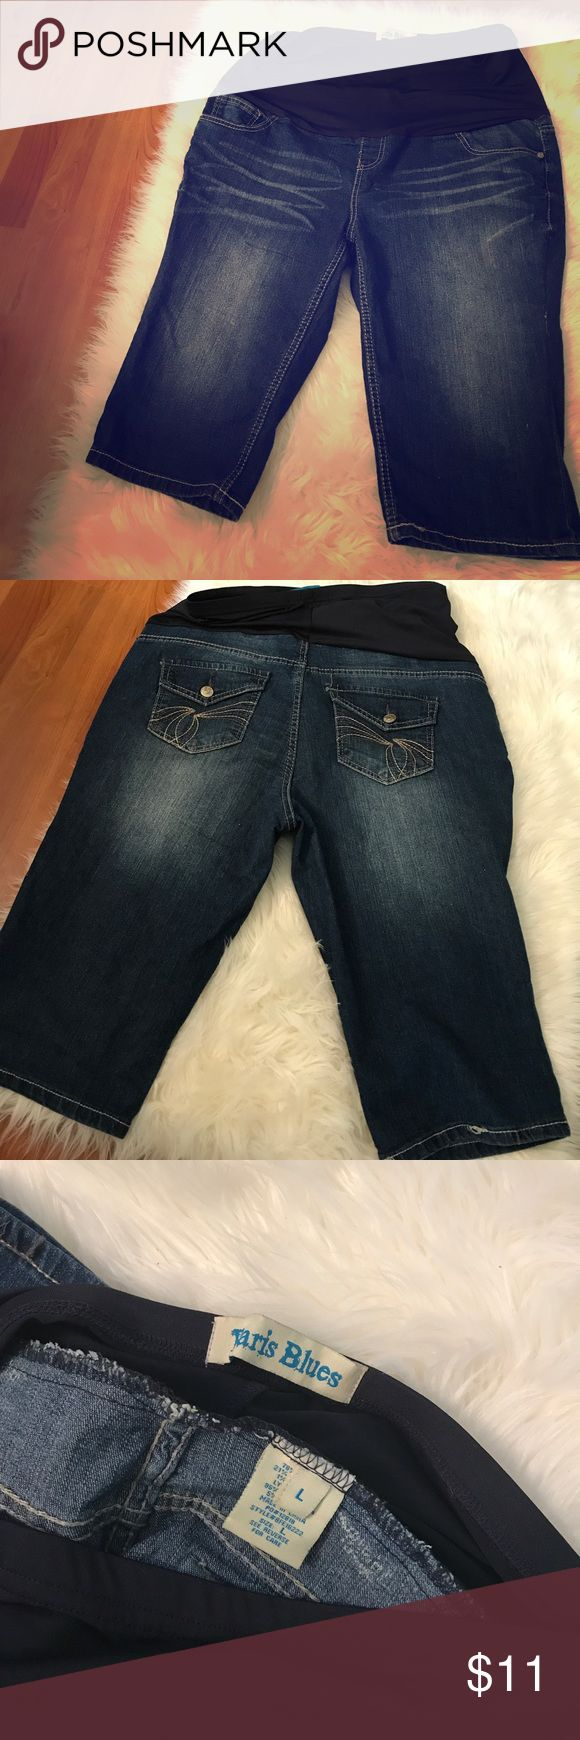 Blue Jean Maternity Capri's Size Large Has the big belly support band. Has a comfy fit. EUC. Smoke free home. No rips or stains. Paris Blues Pants Capris